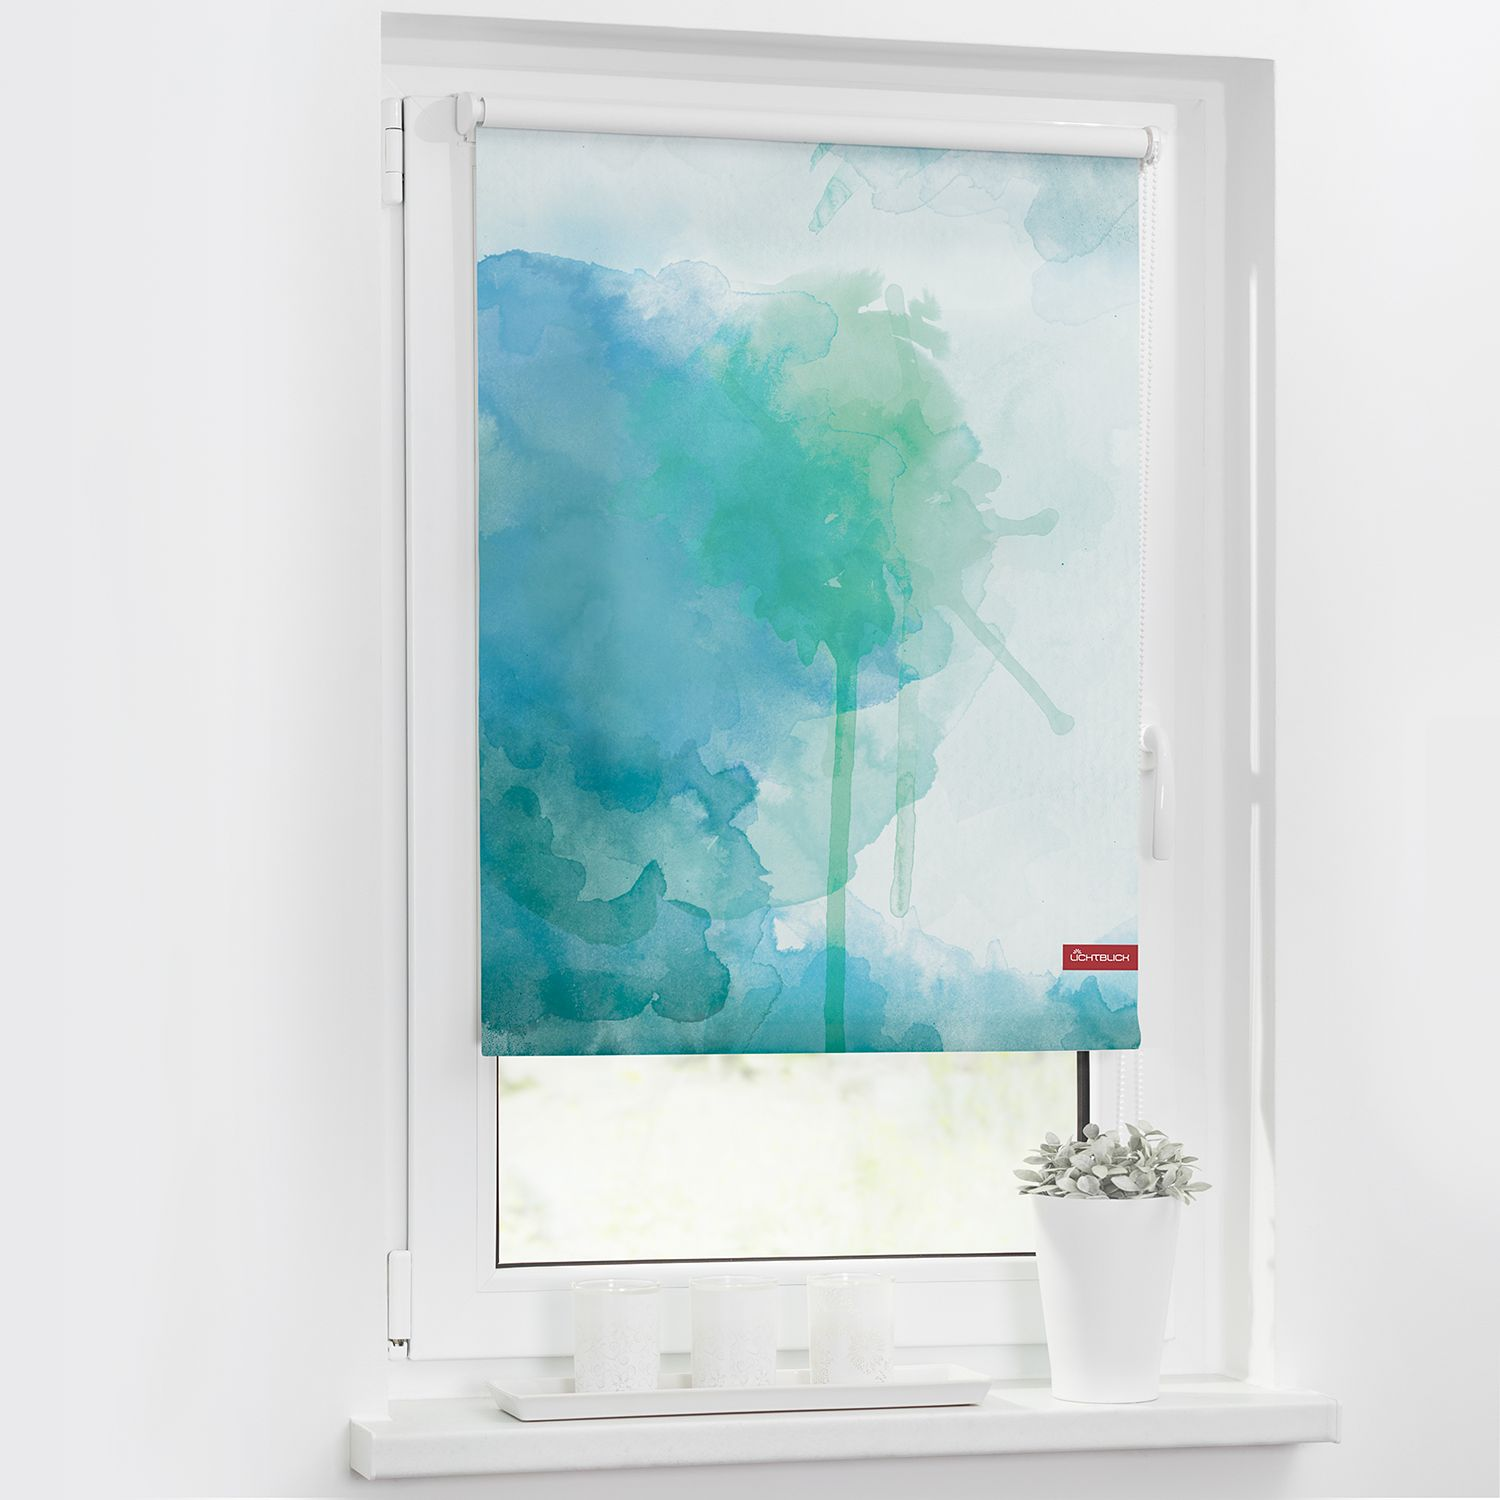 Rollo Aquarell, home24